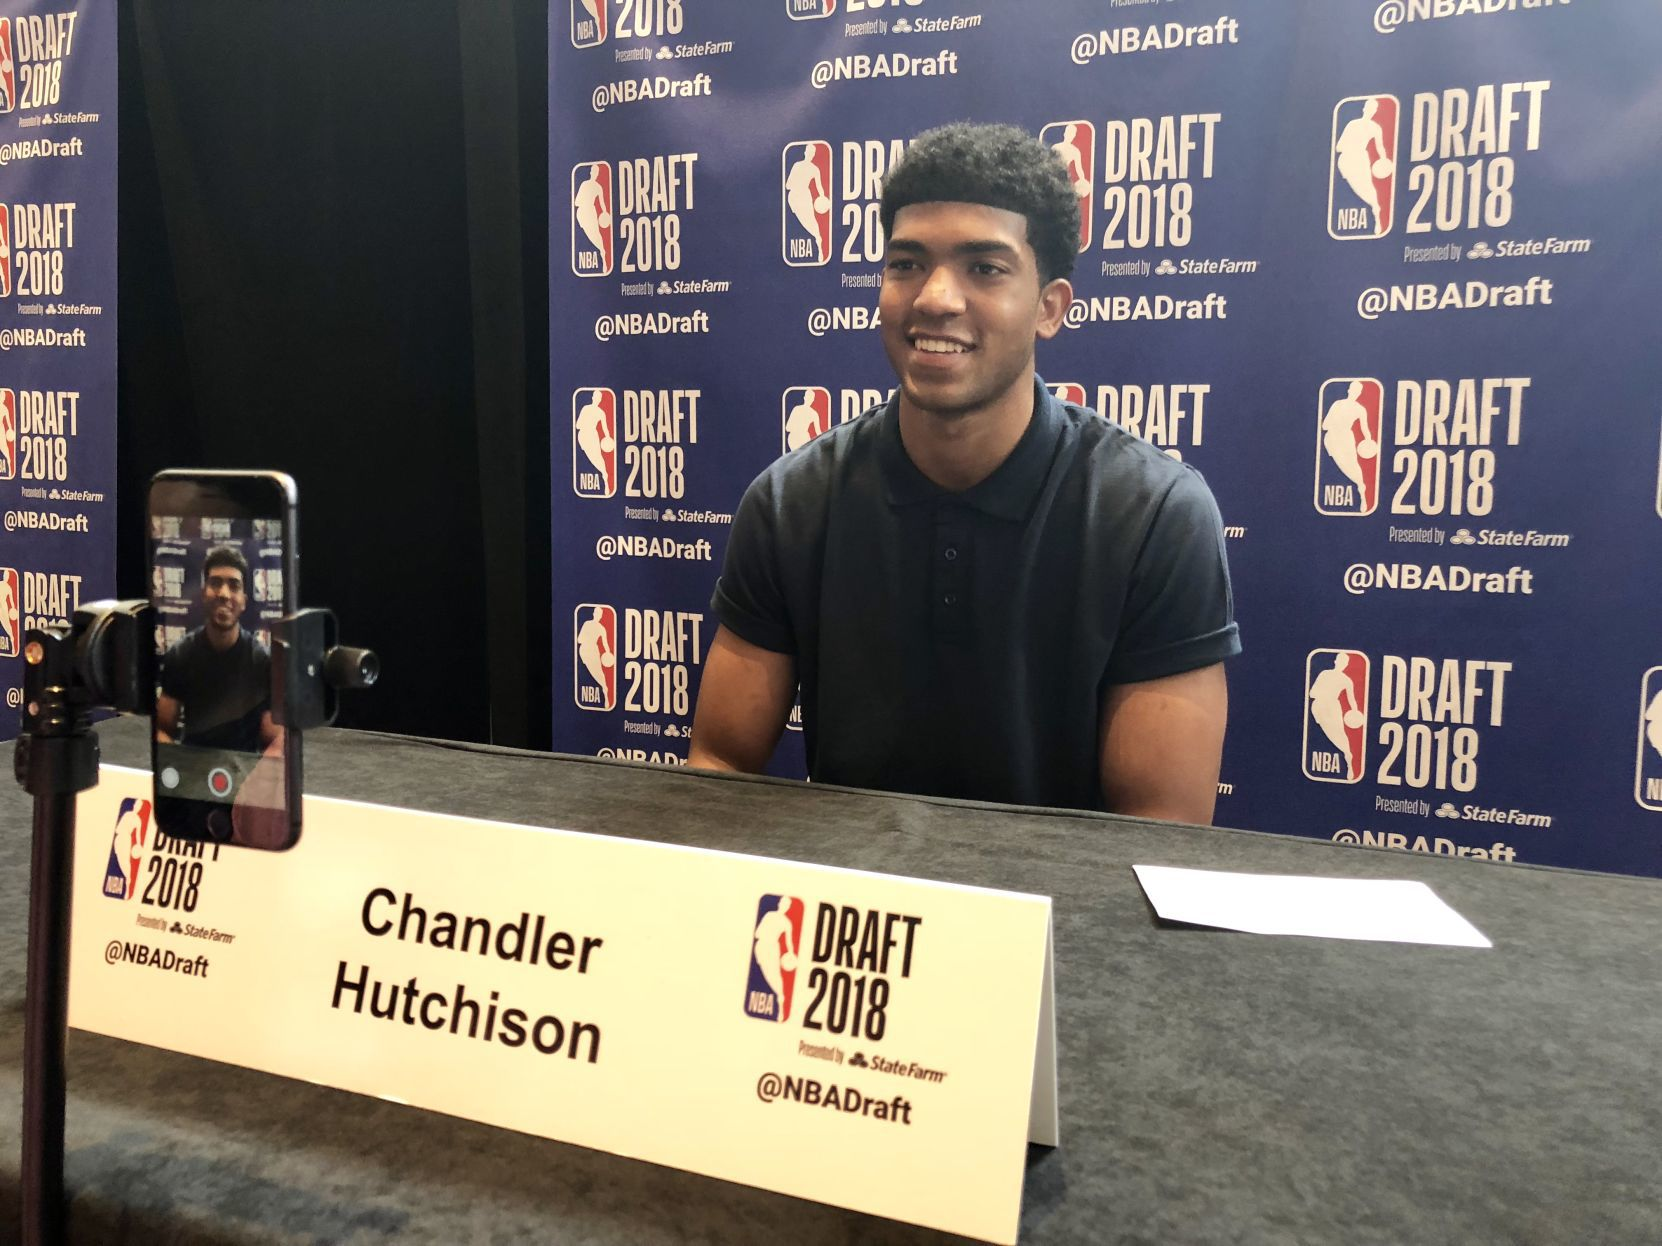 HISTORY AWAITS: Chandler Hutchison ready to become a first round NBA Draft pick Thursday - the first ever at Boise State | Idaho Press